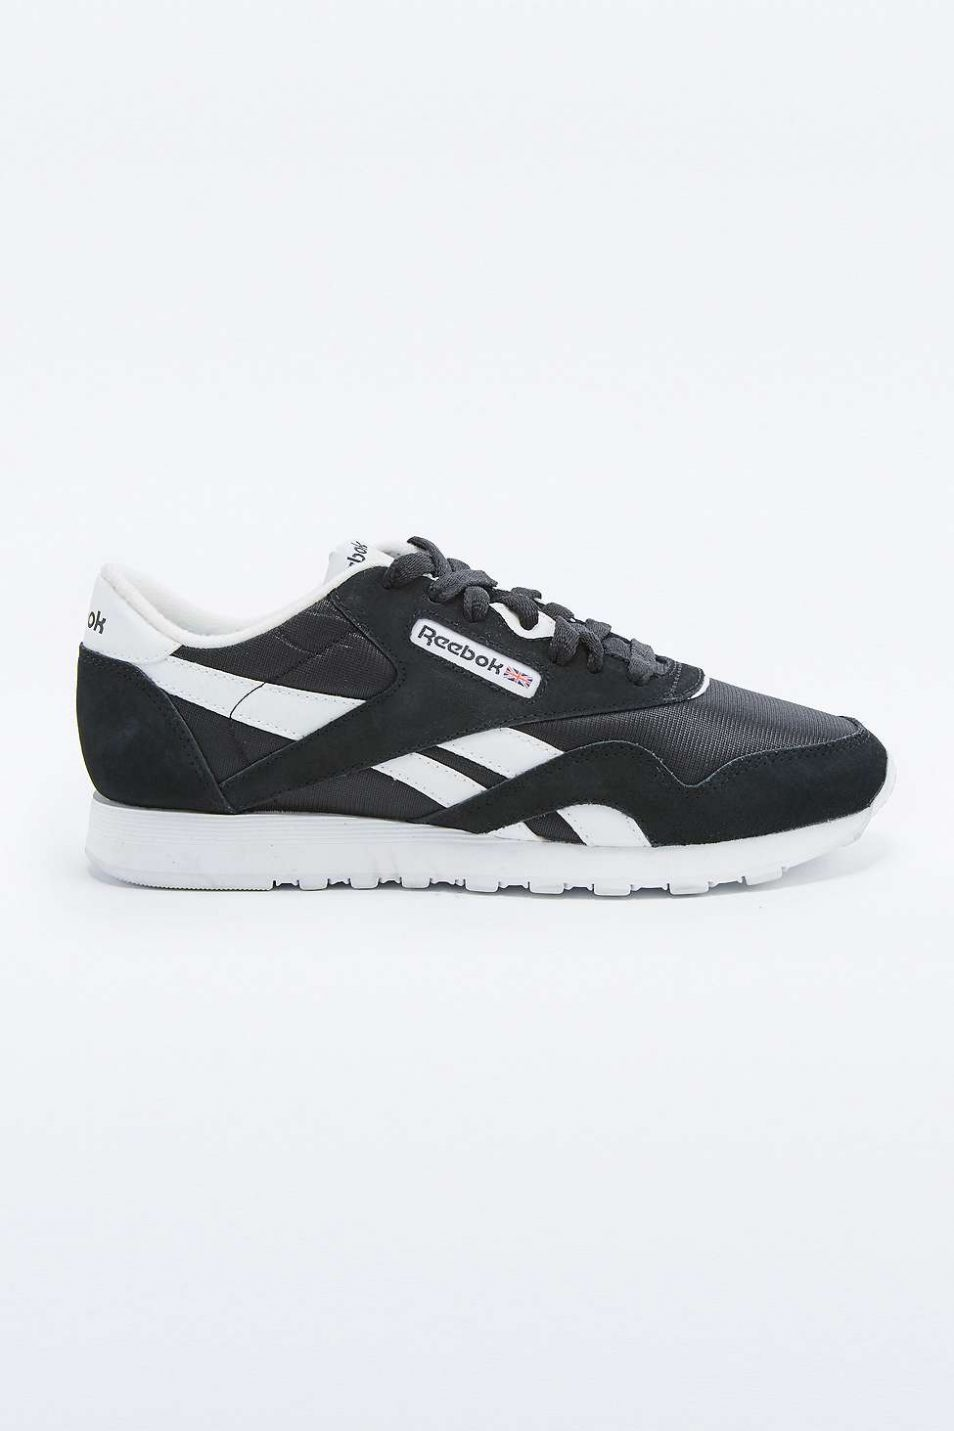 Reebok Classic Black and White Trainers 2 1